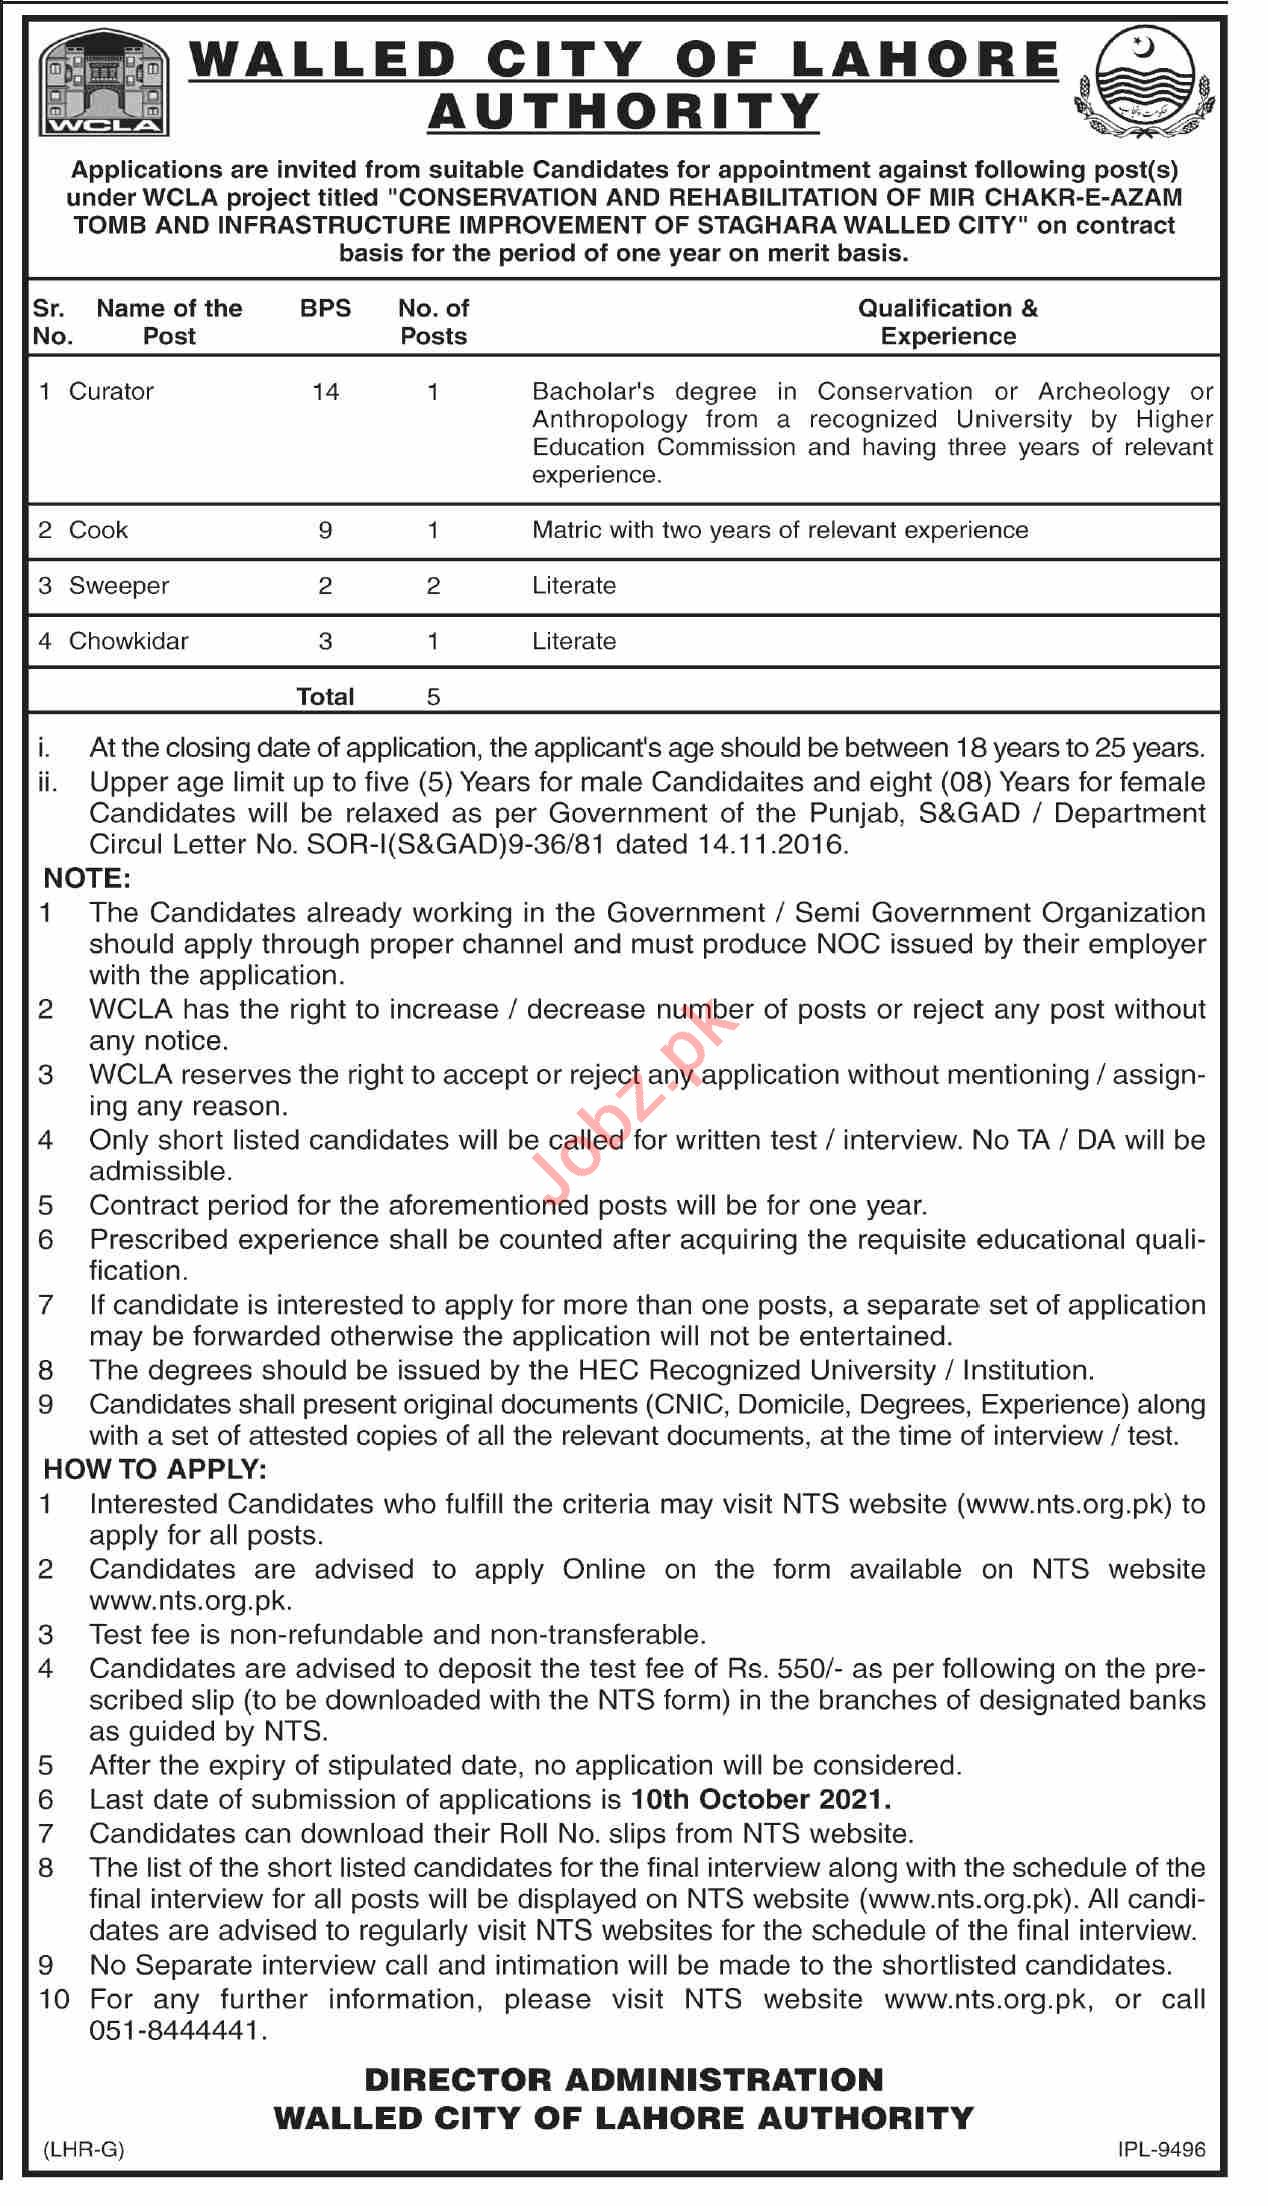 Walled City of Lahore Authority Jobs 2021 for Cook & Sweeper